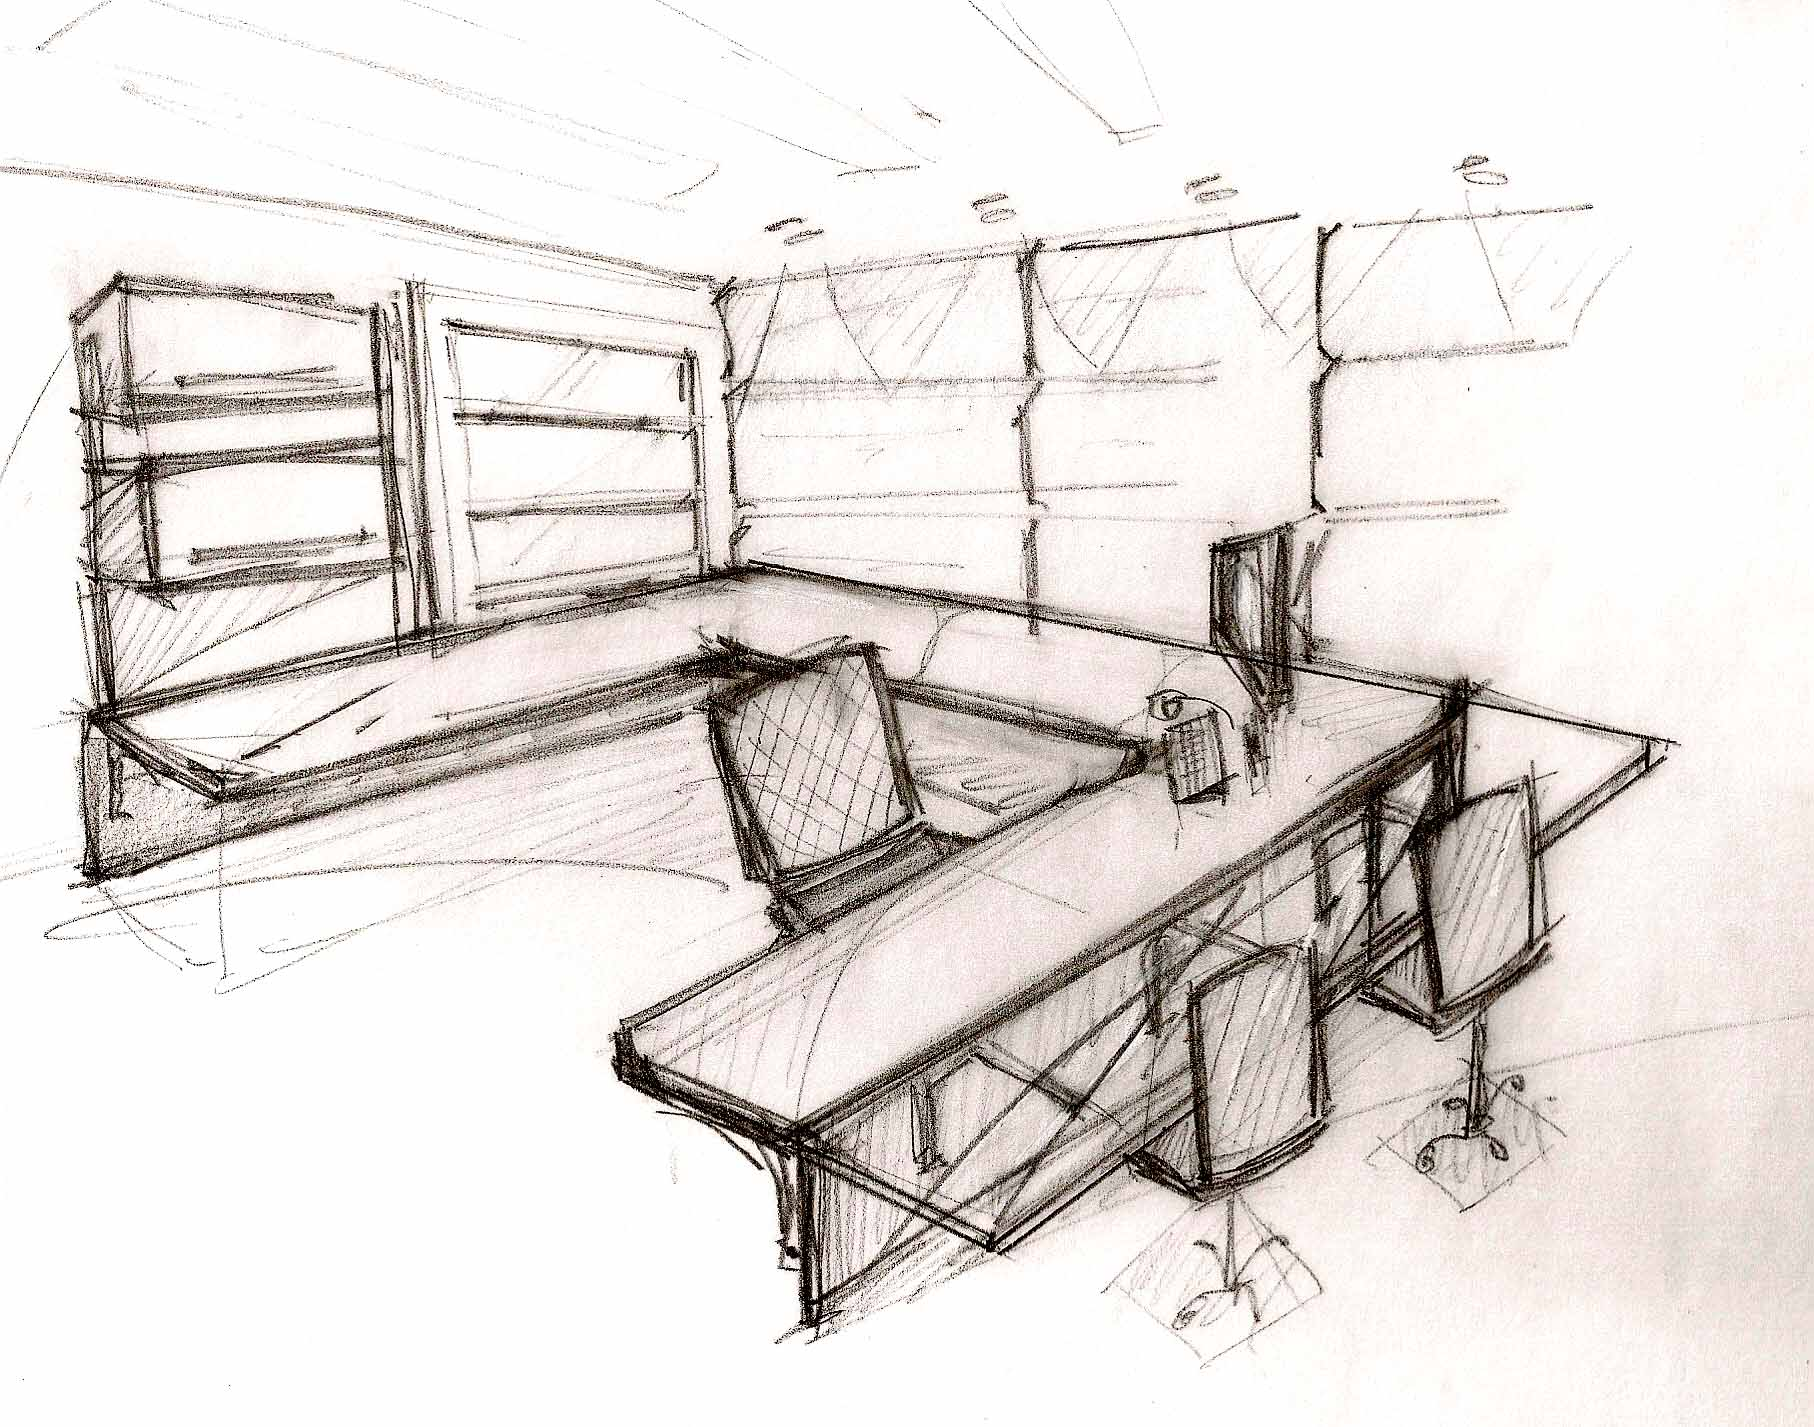 Office furniture design sketches - H Favorite Qview Full Size